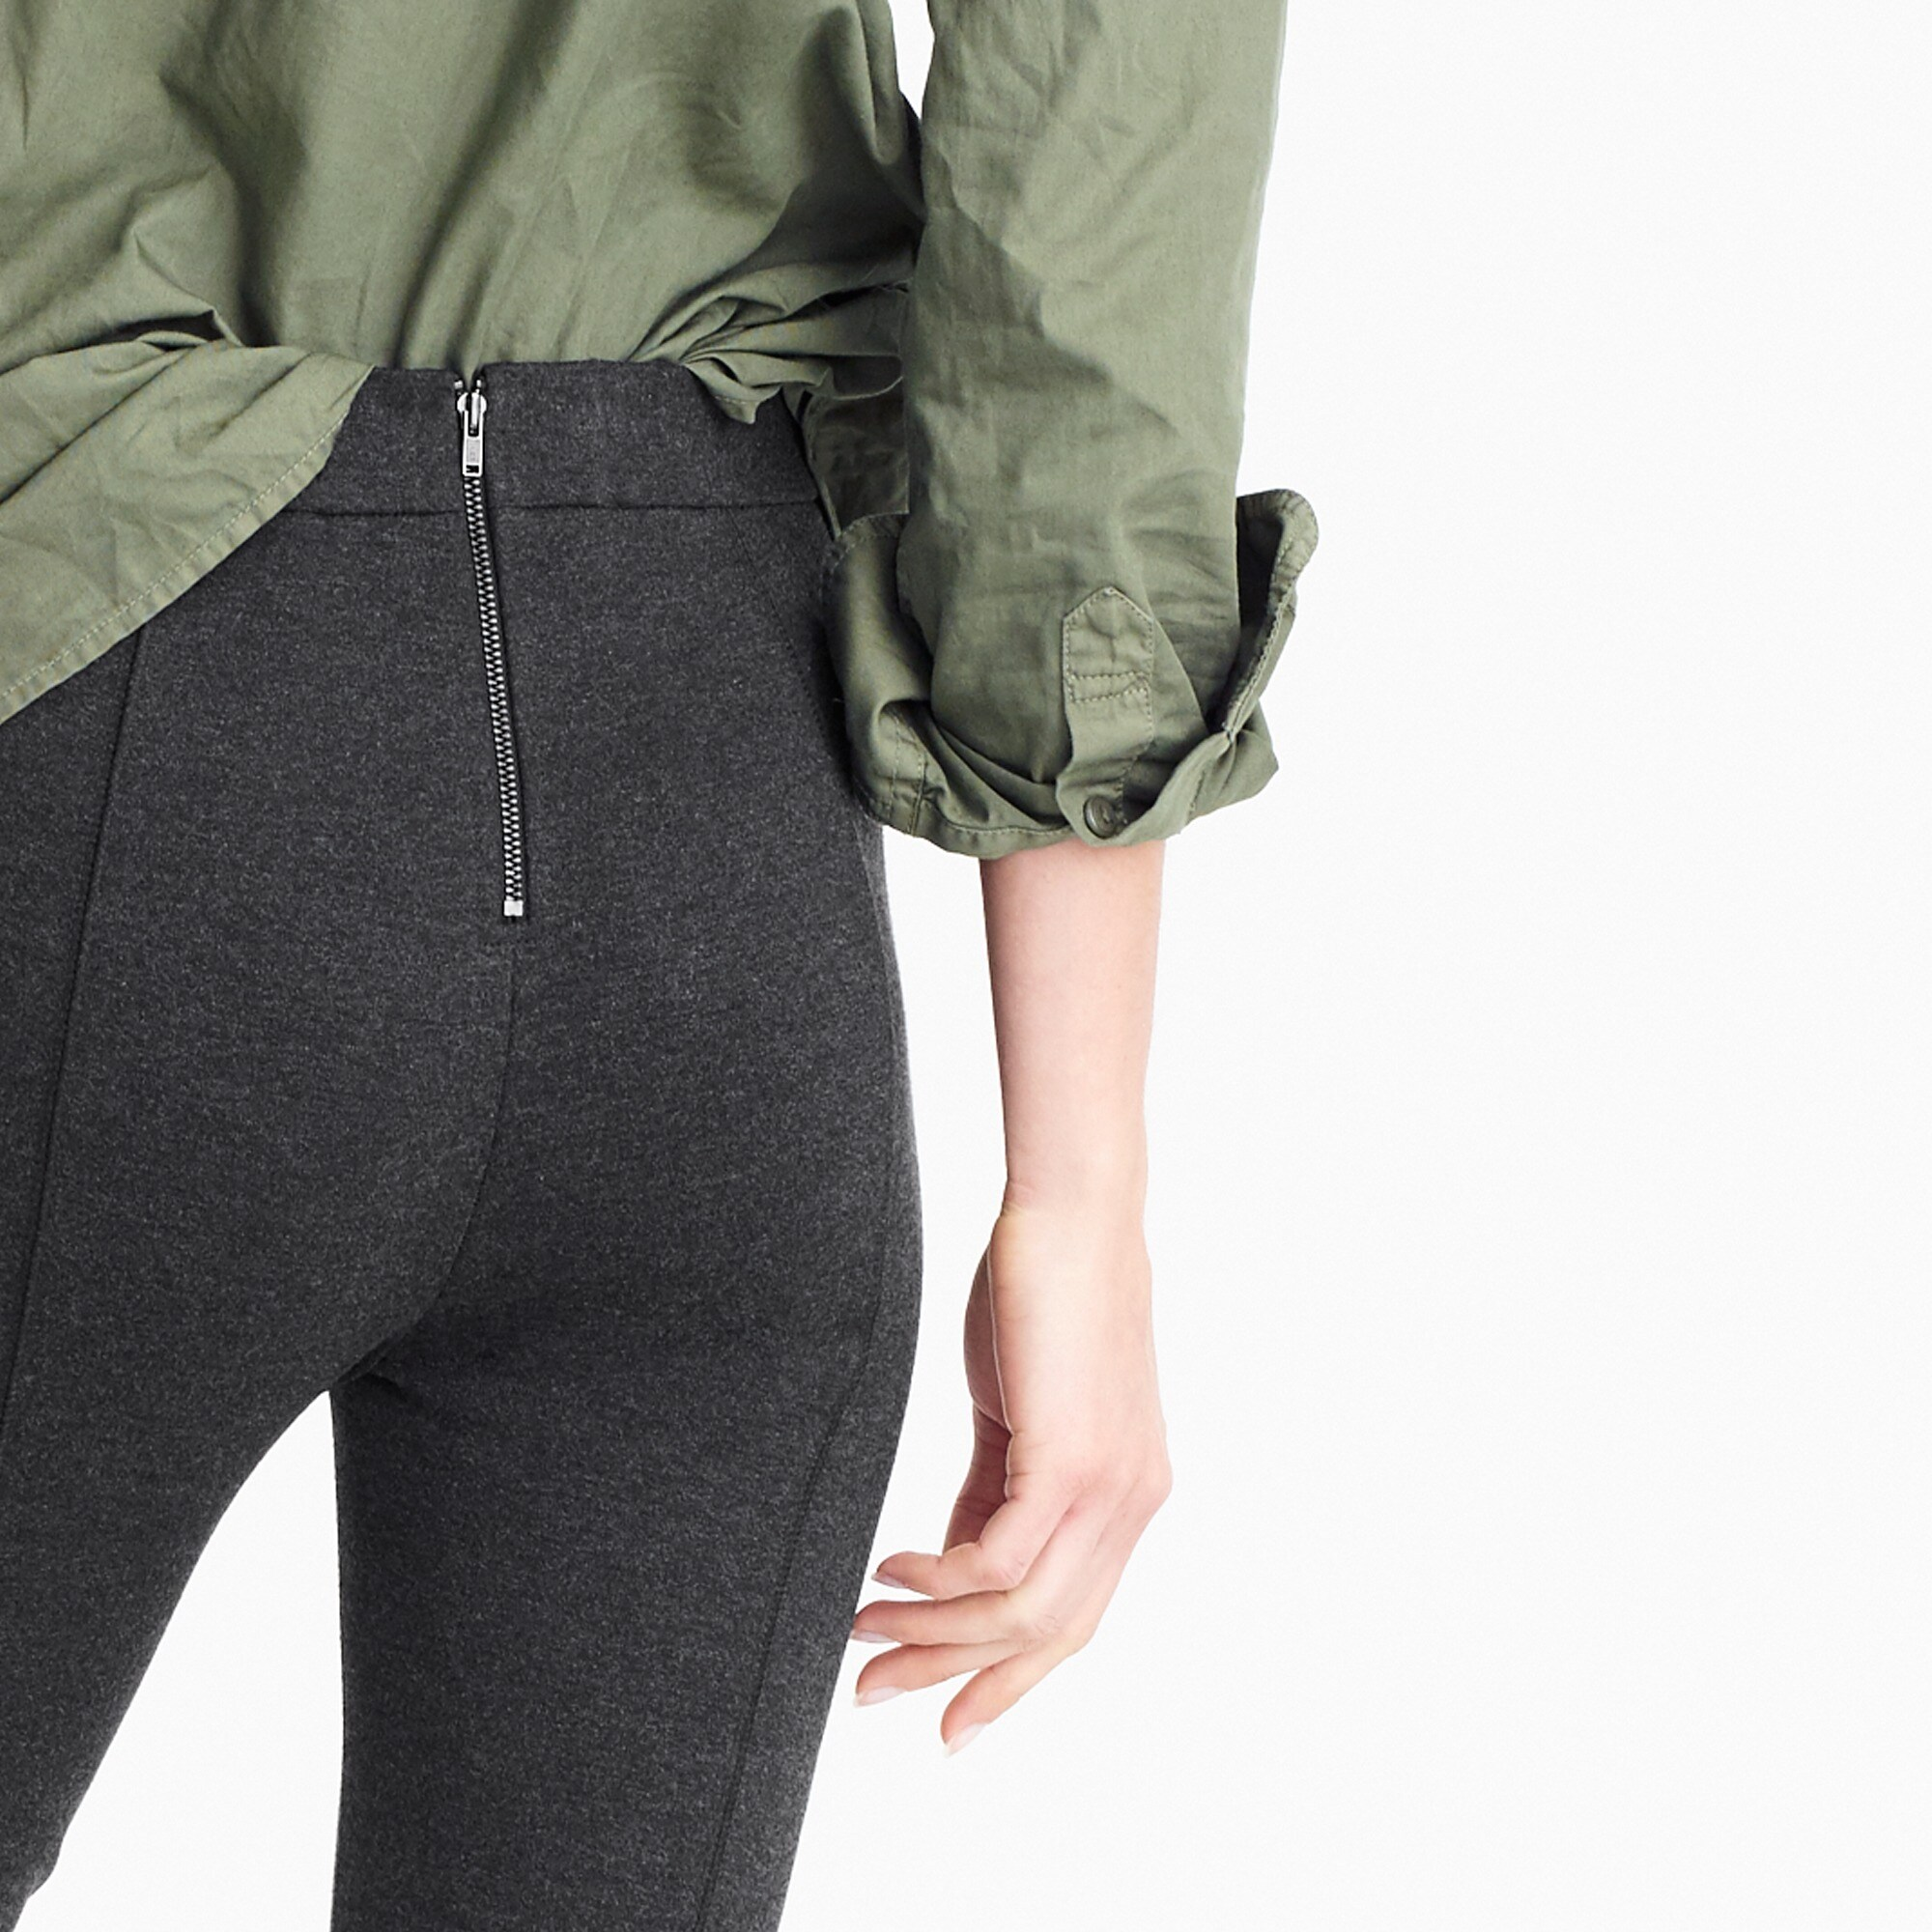 Image 3 for Any day pant in stretch ponte